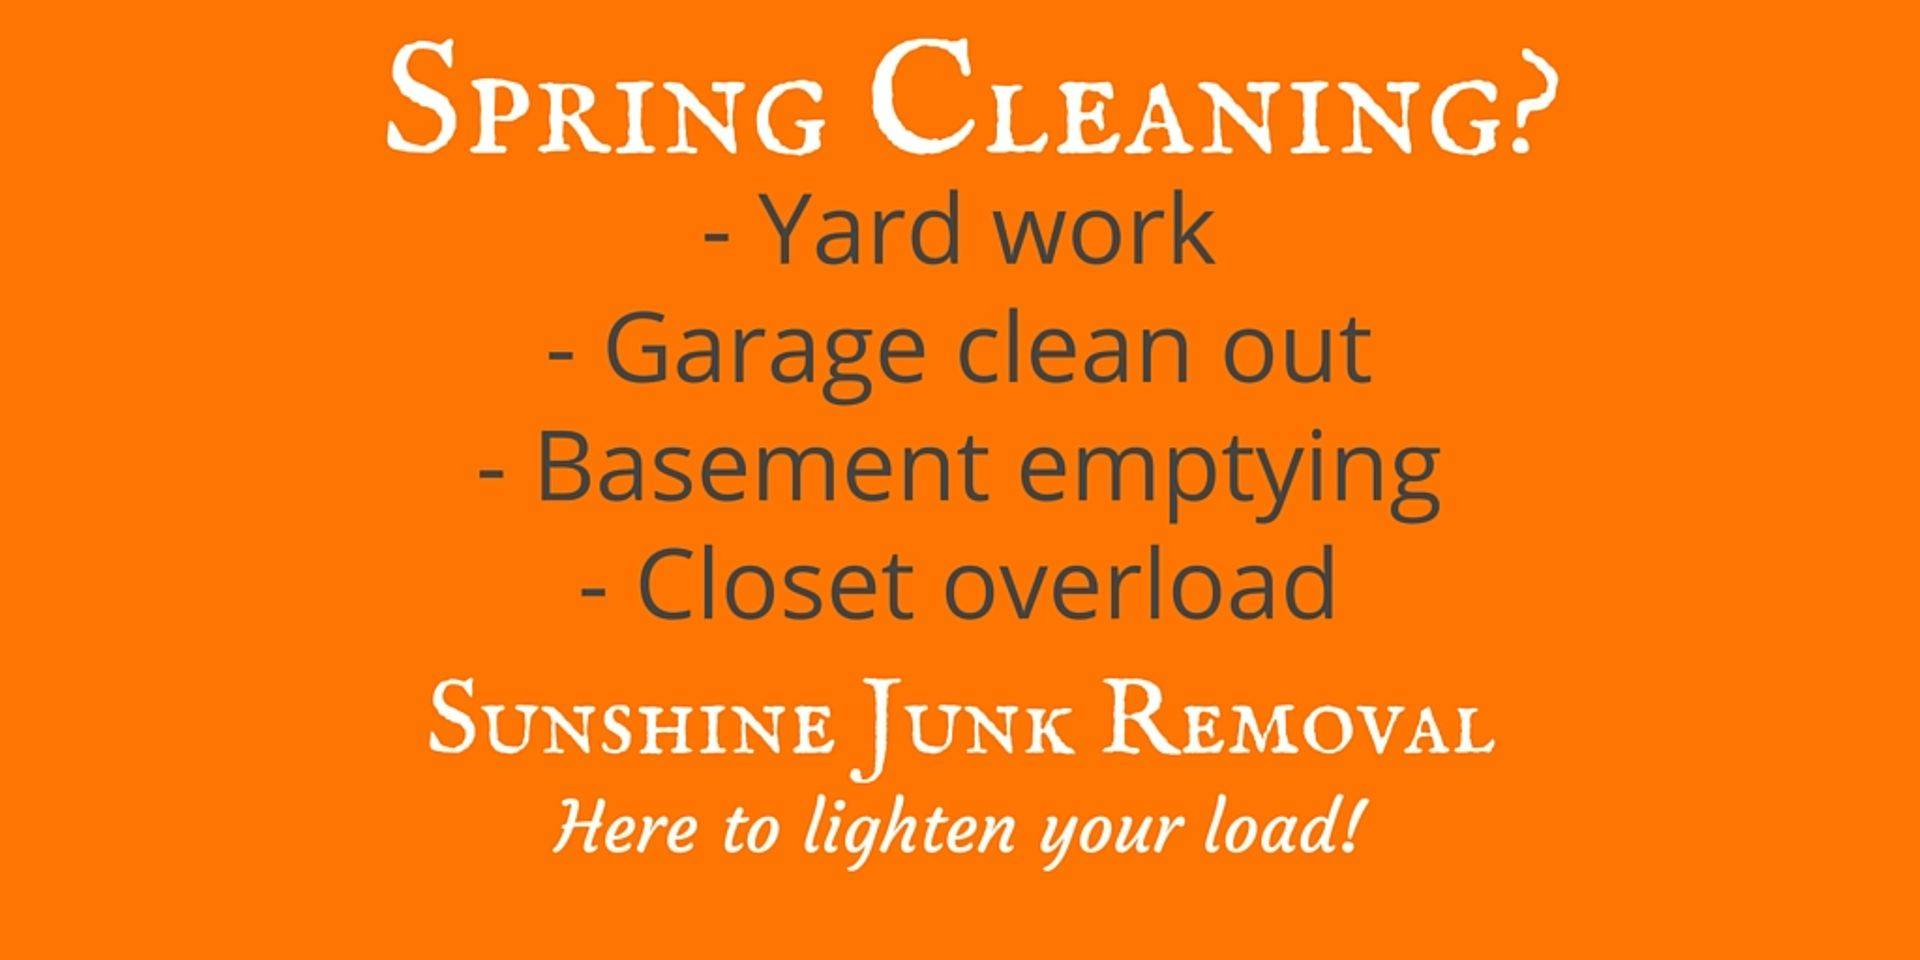 Spring Cleaning Help